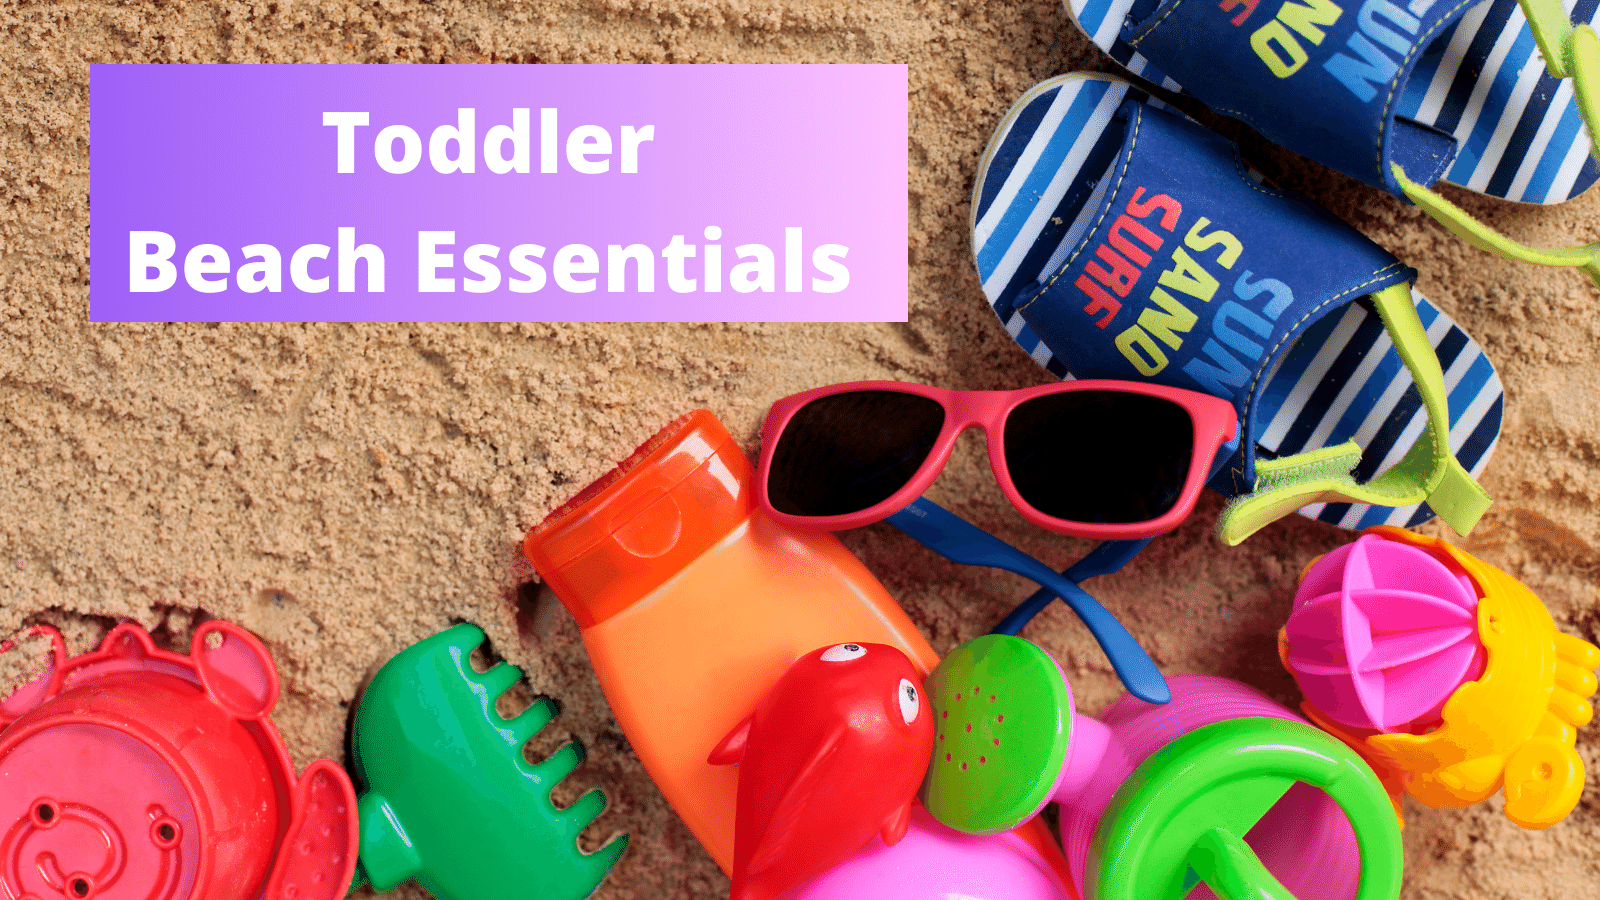 Toddler Beach Essentials - Everything You'll Need For A Day On The Beach With Kids